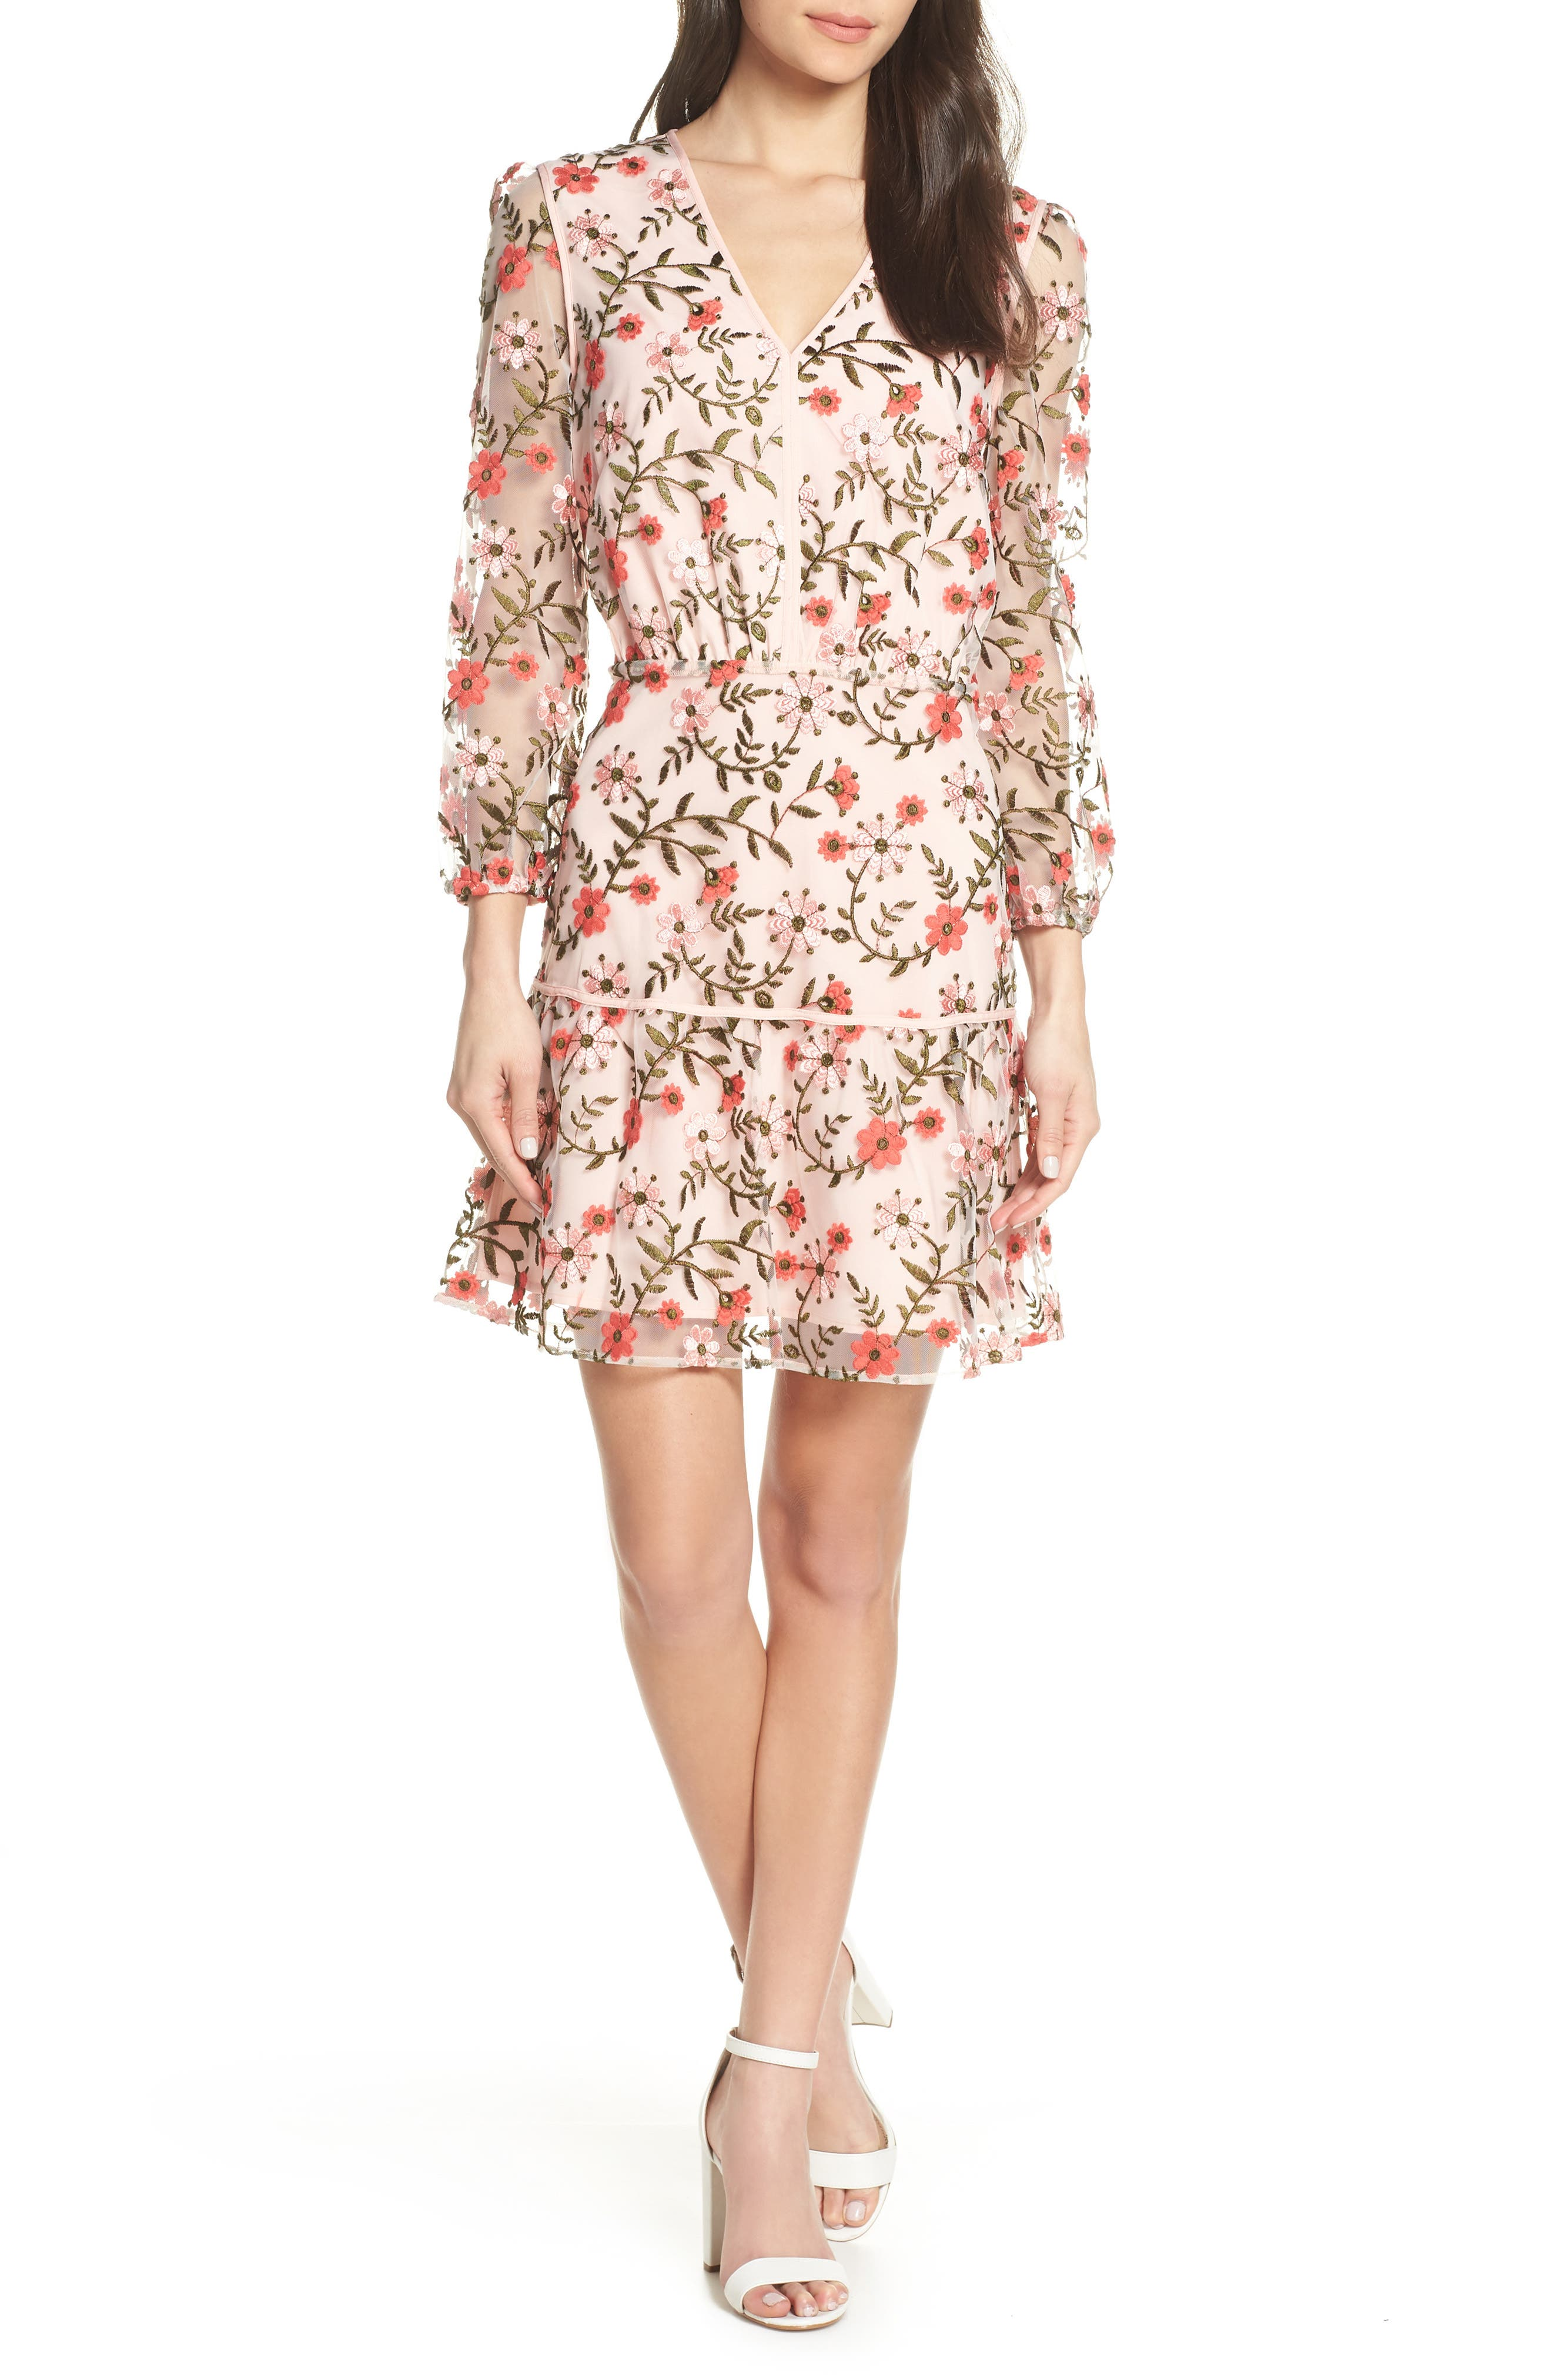 Sam Edelman Embroidered Floral Dress, Pink